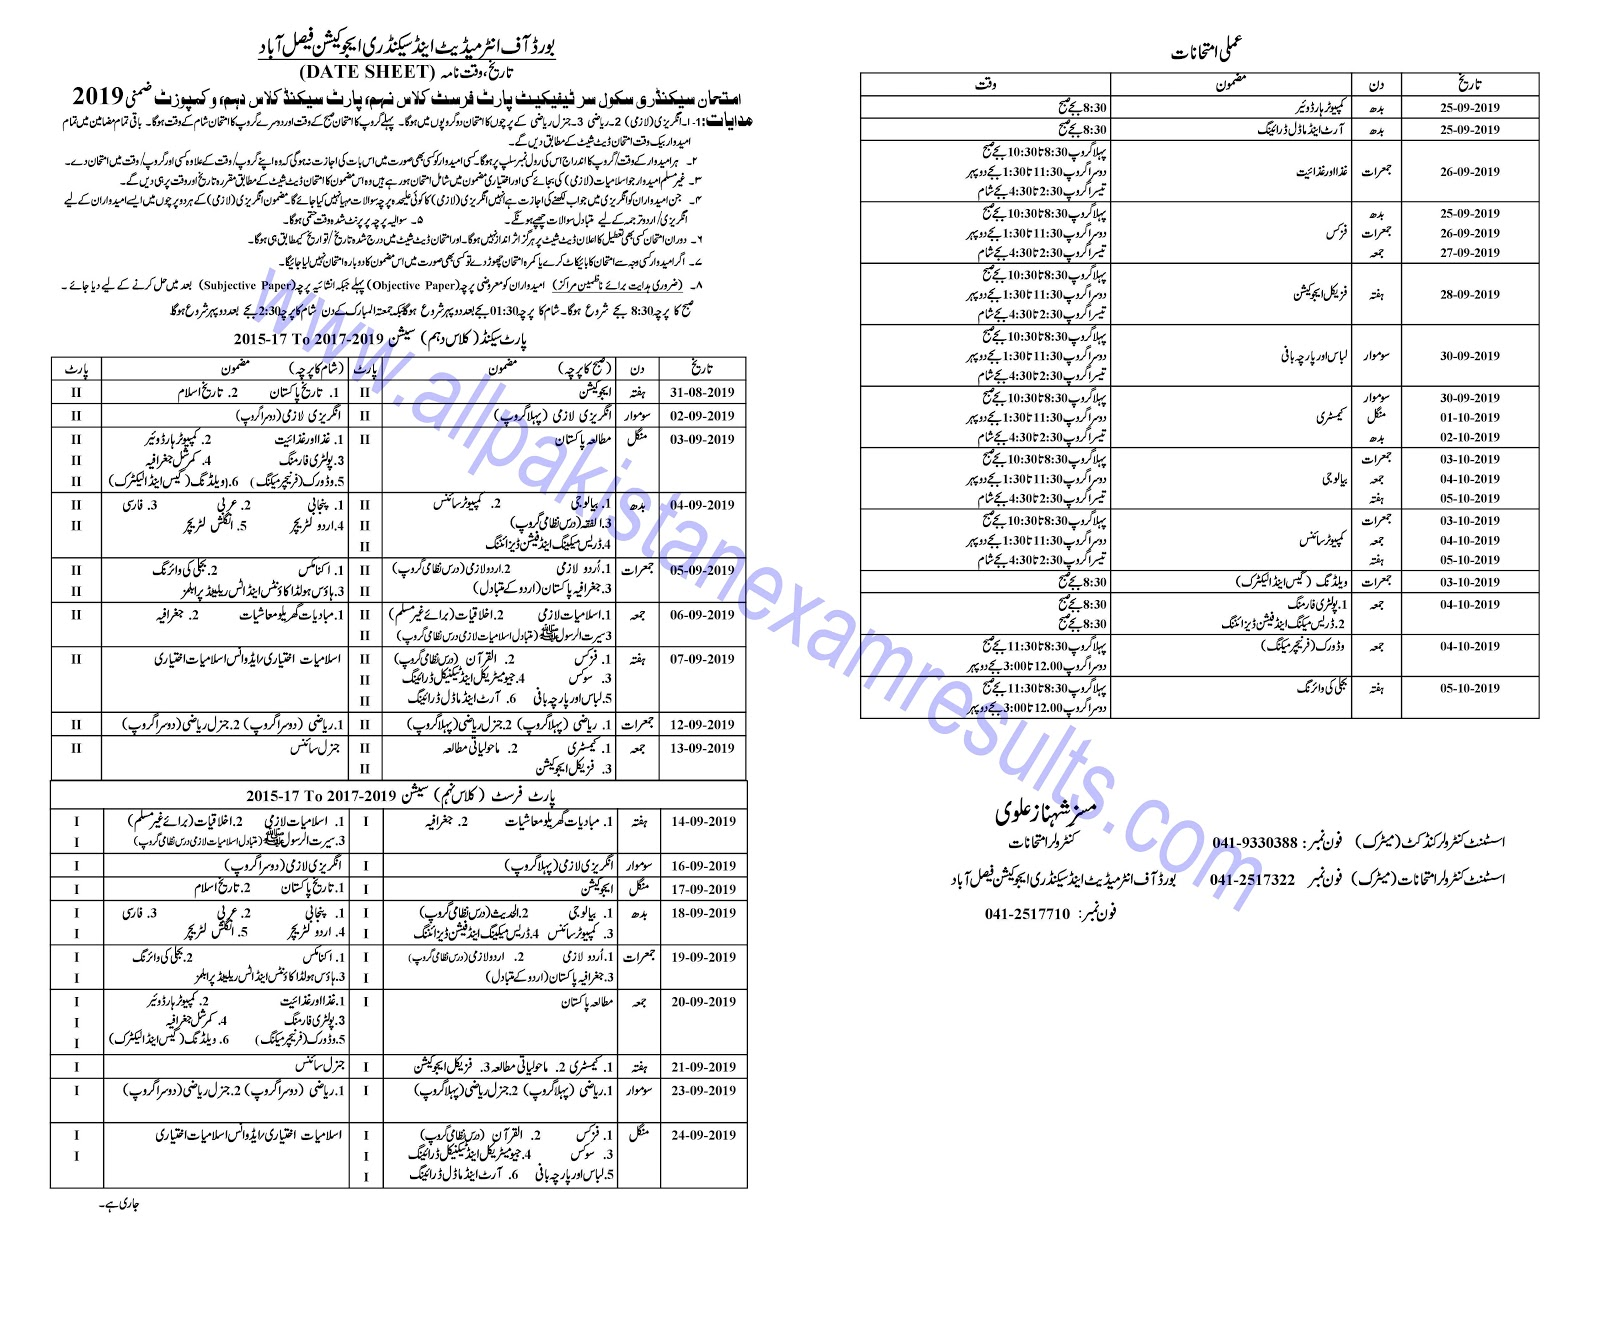 Date Sheet For SSC Supplementary Faisalabad Board 2019